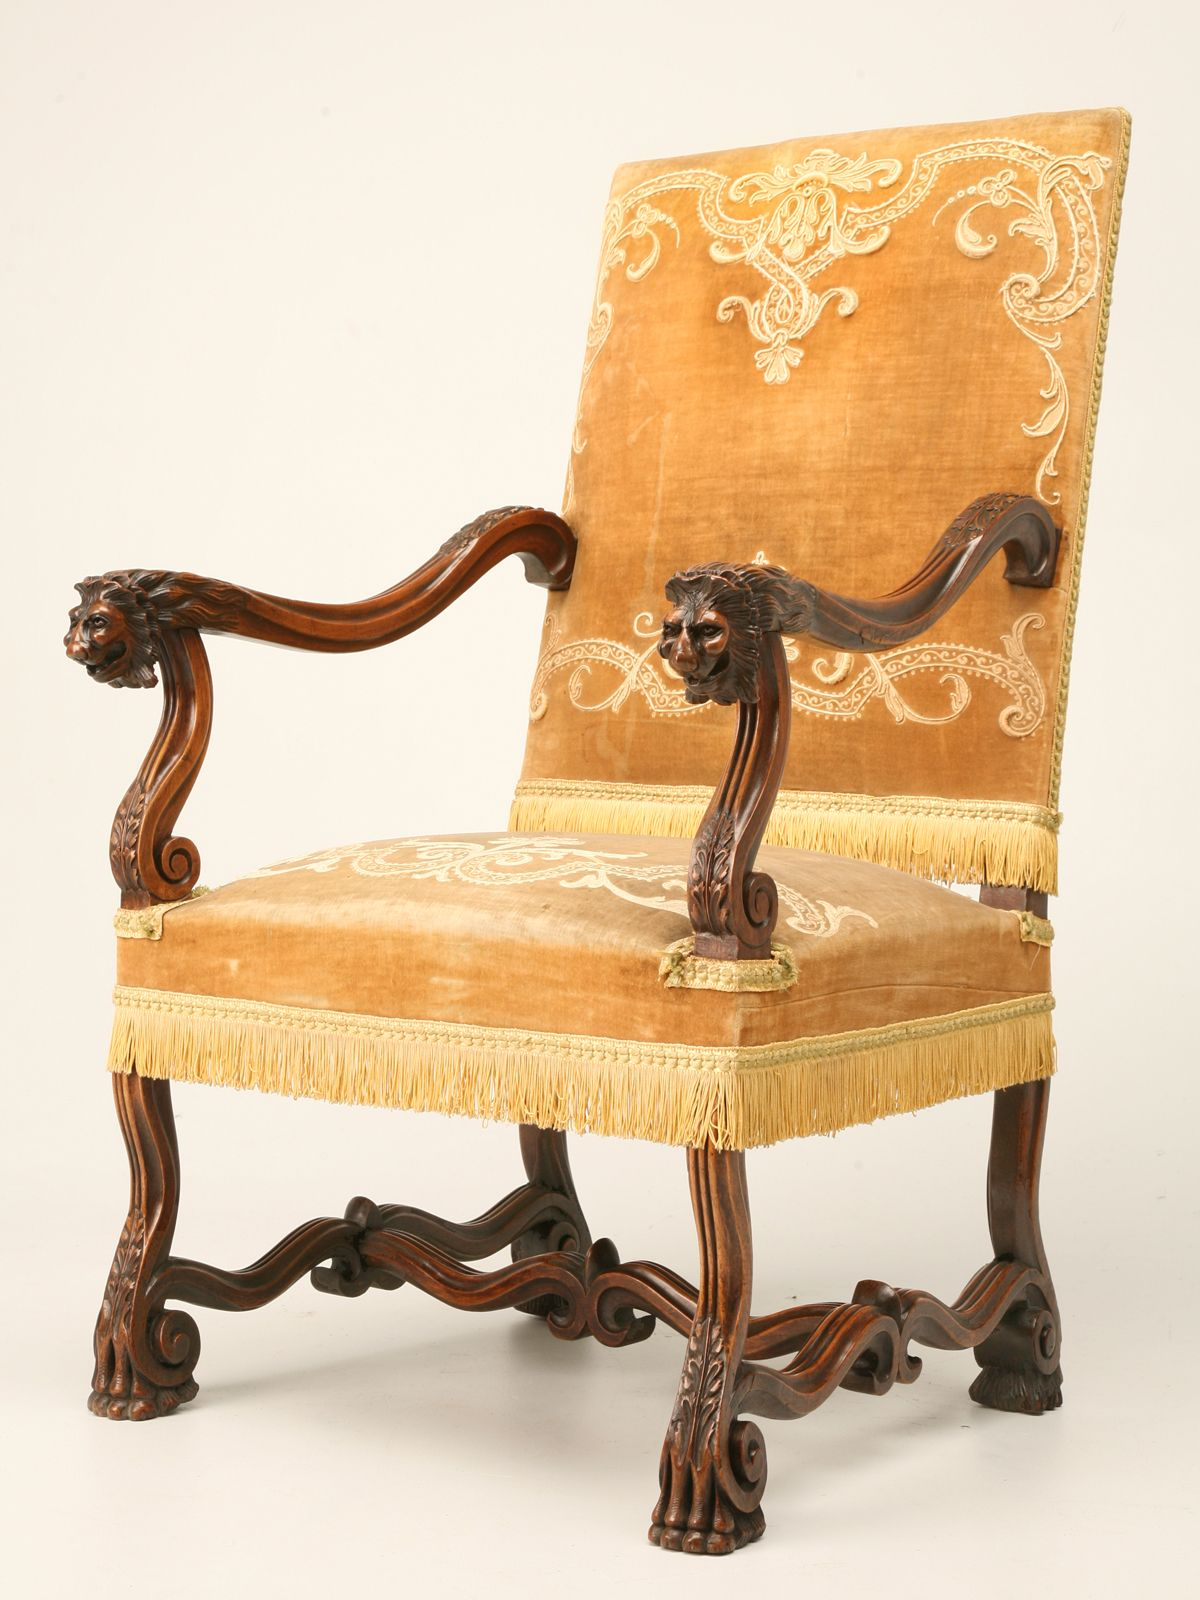 Lion Chair Antique Walnut Throne Chair In The Louis Xiii Style